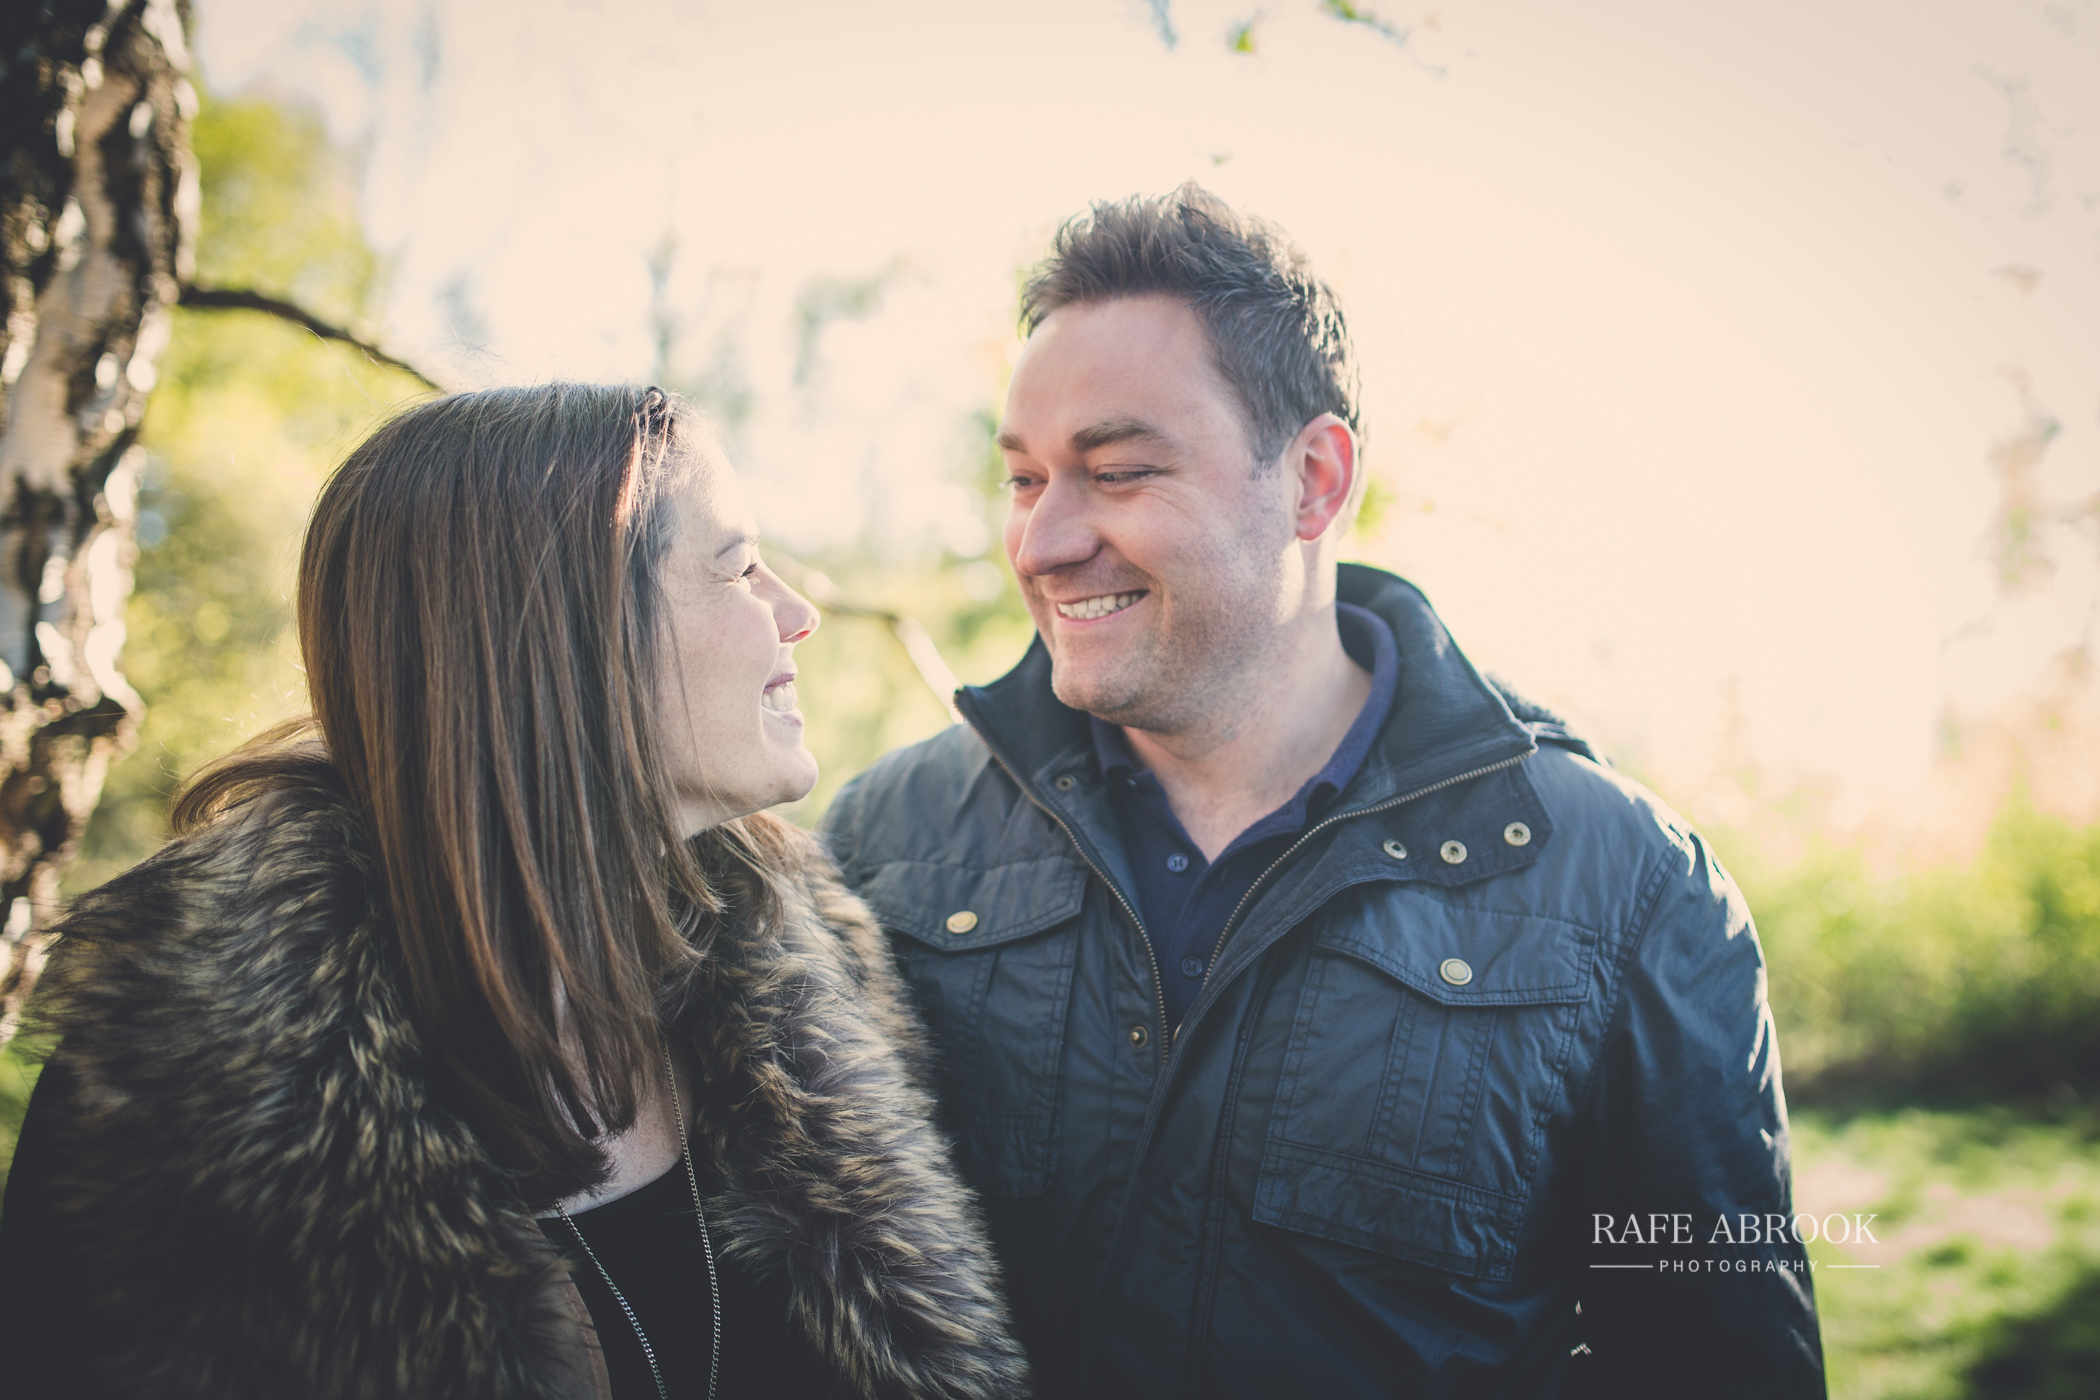 jon & laura engagement shoot rspb the lodge sandy bedfordshire-1006.jpg